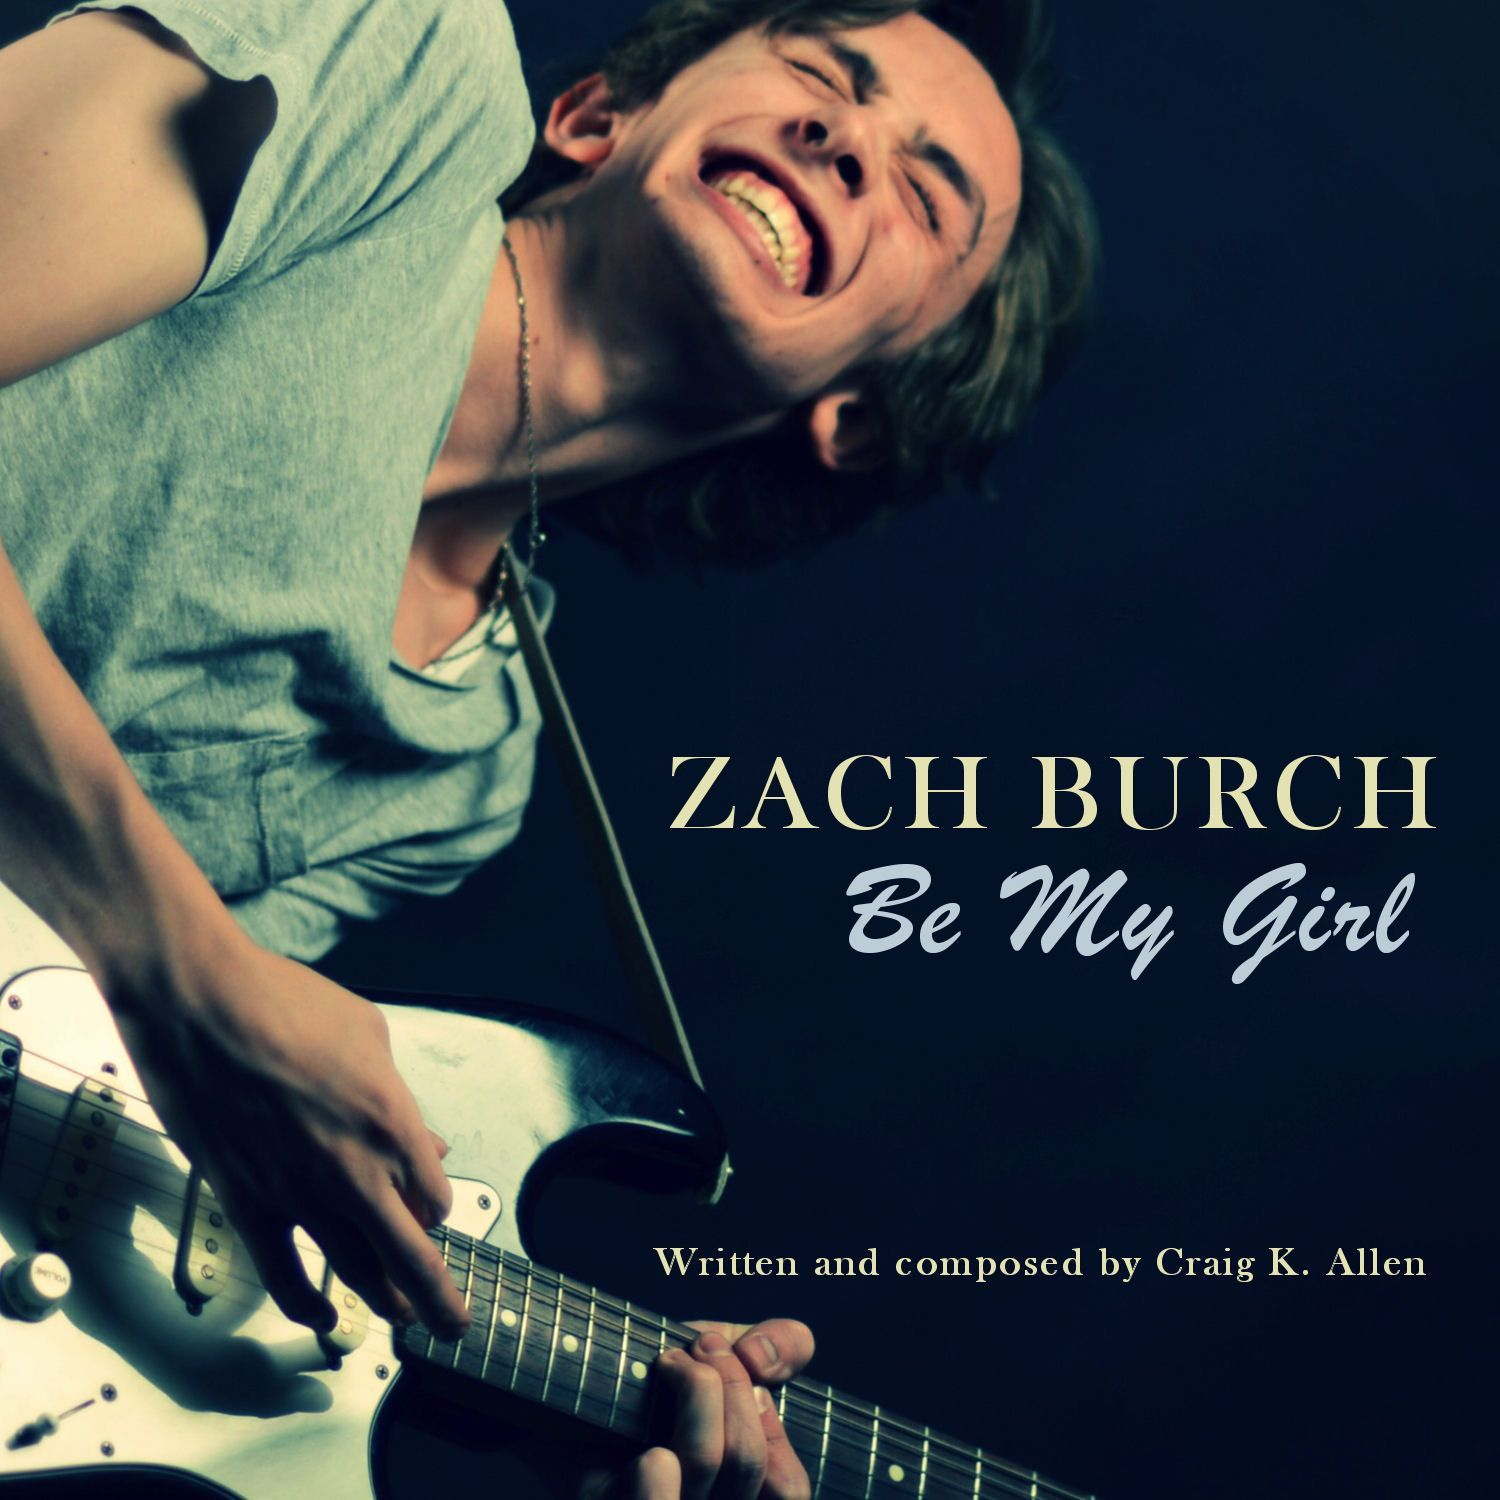 Zach Burch